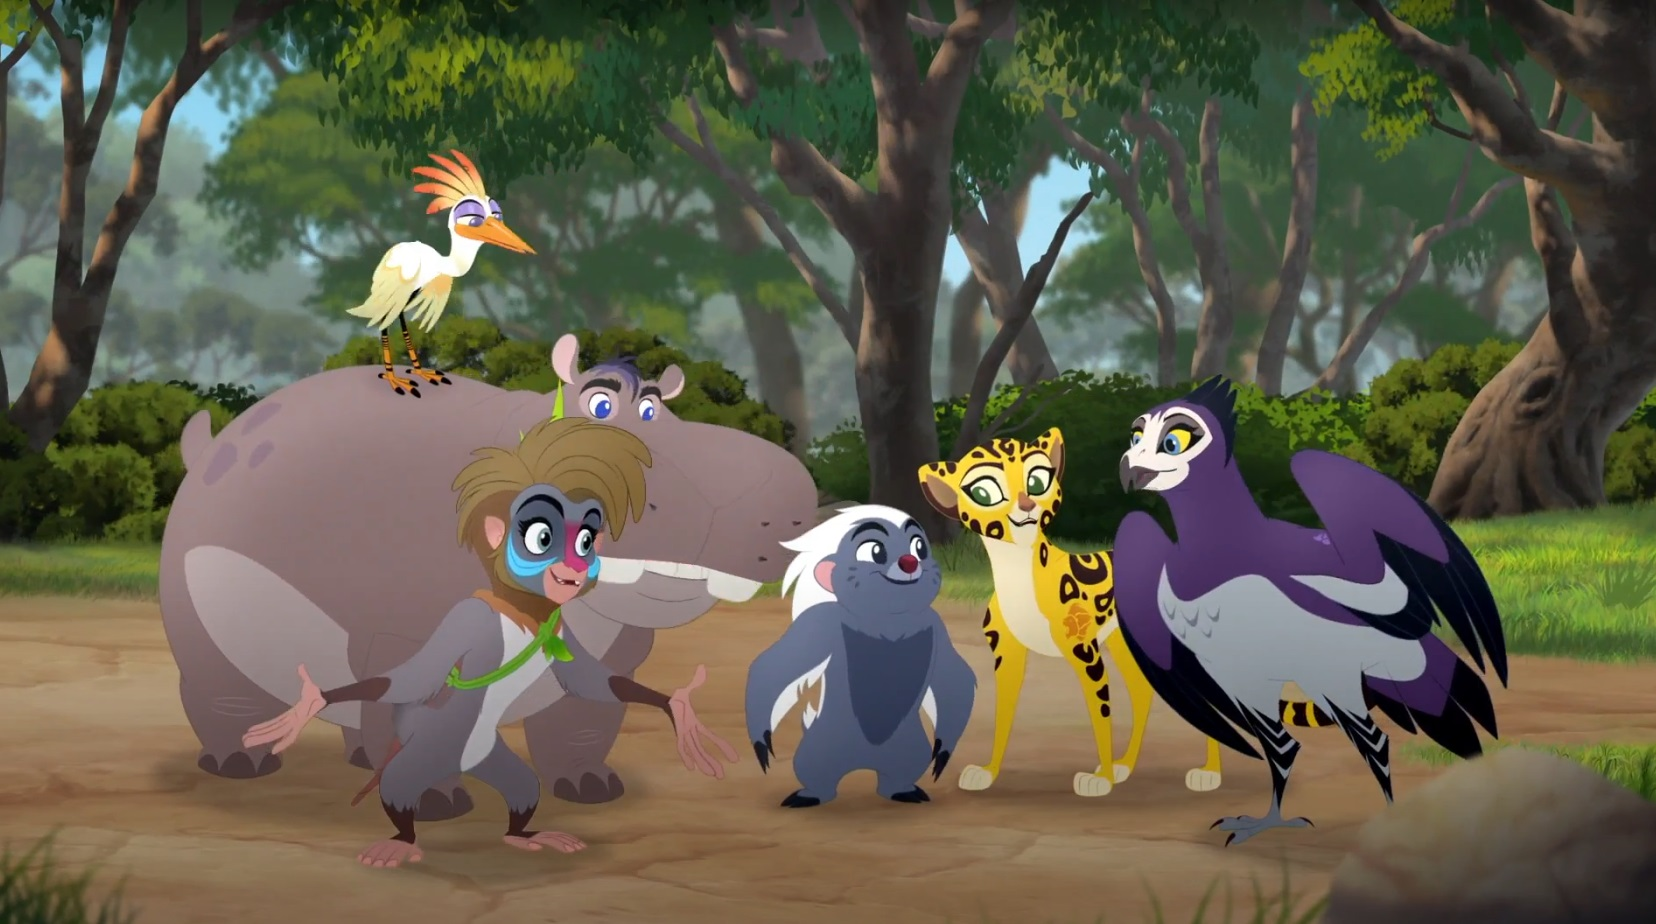 Friends To The End Song The Lion Guard Lyrics Season 3 Soundtrack